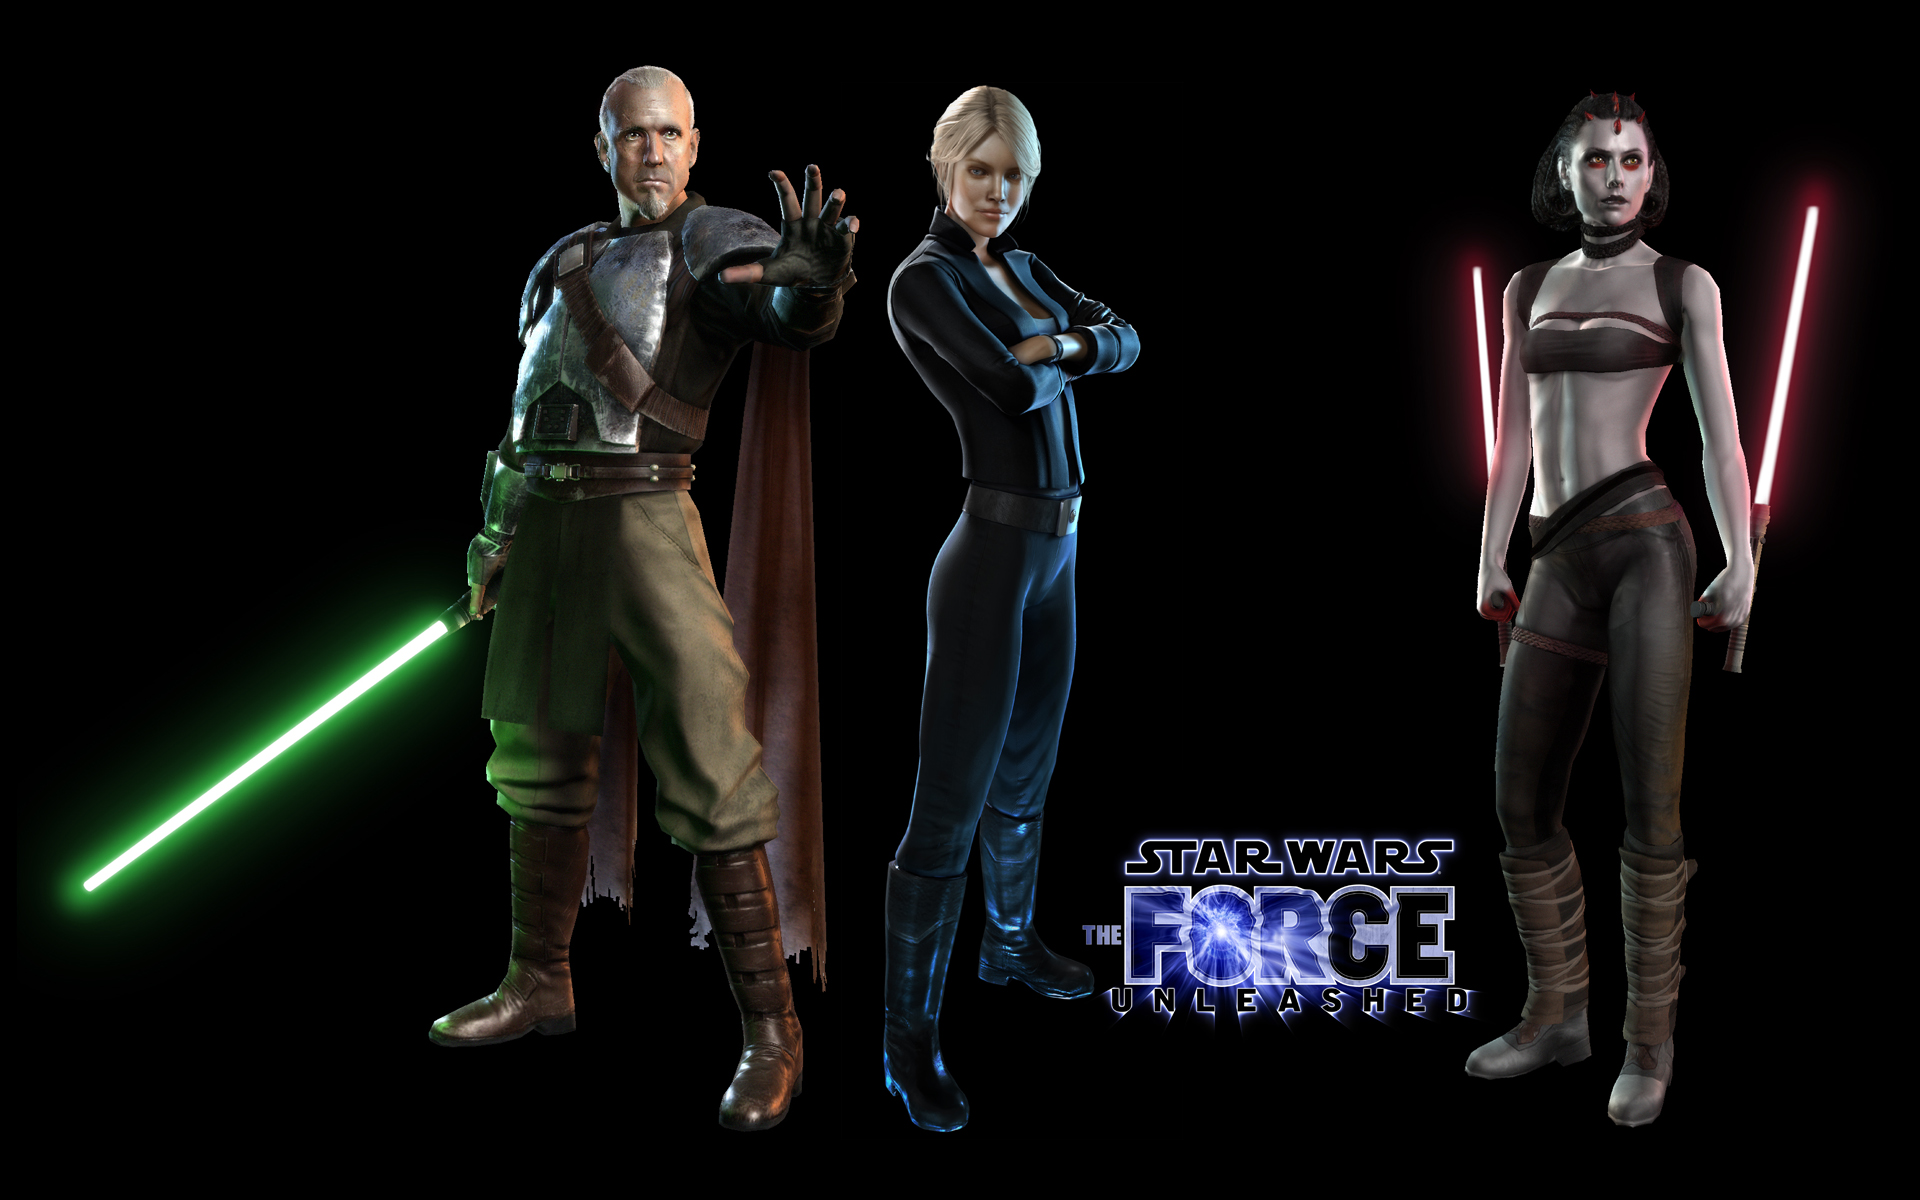 The force unleashed clipart.